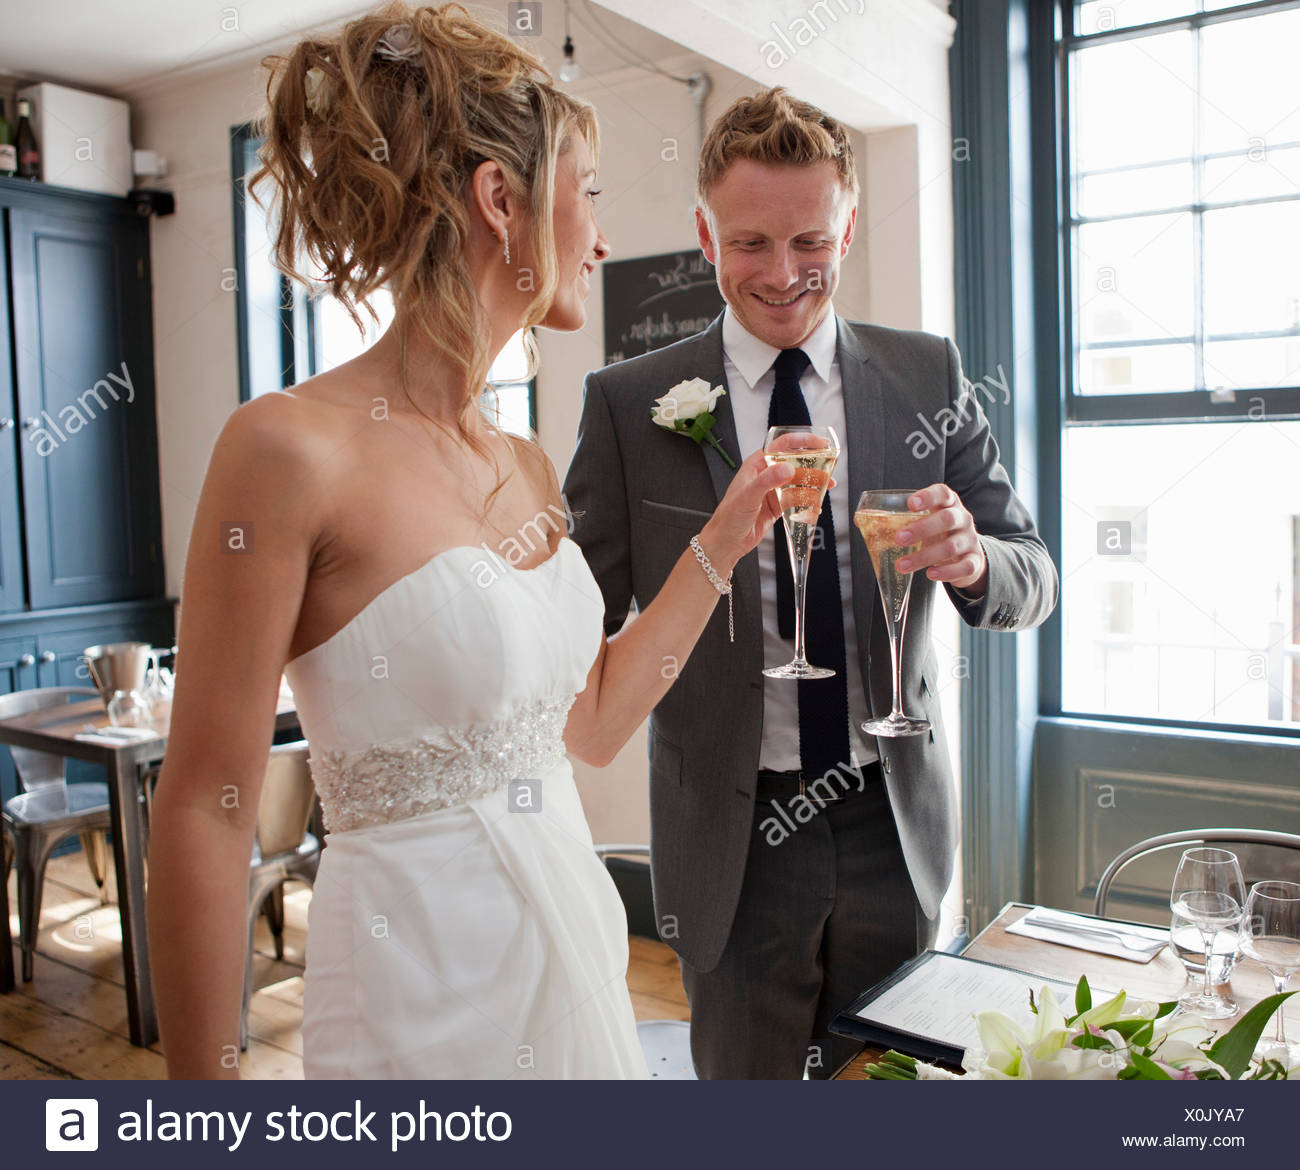 Bride and groom toasting with champagne at wedding ceremony - Stock Image